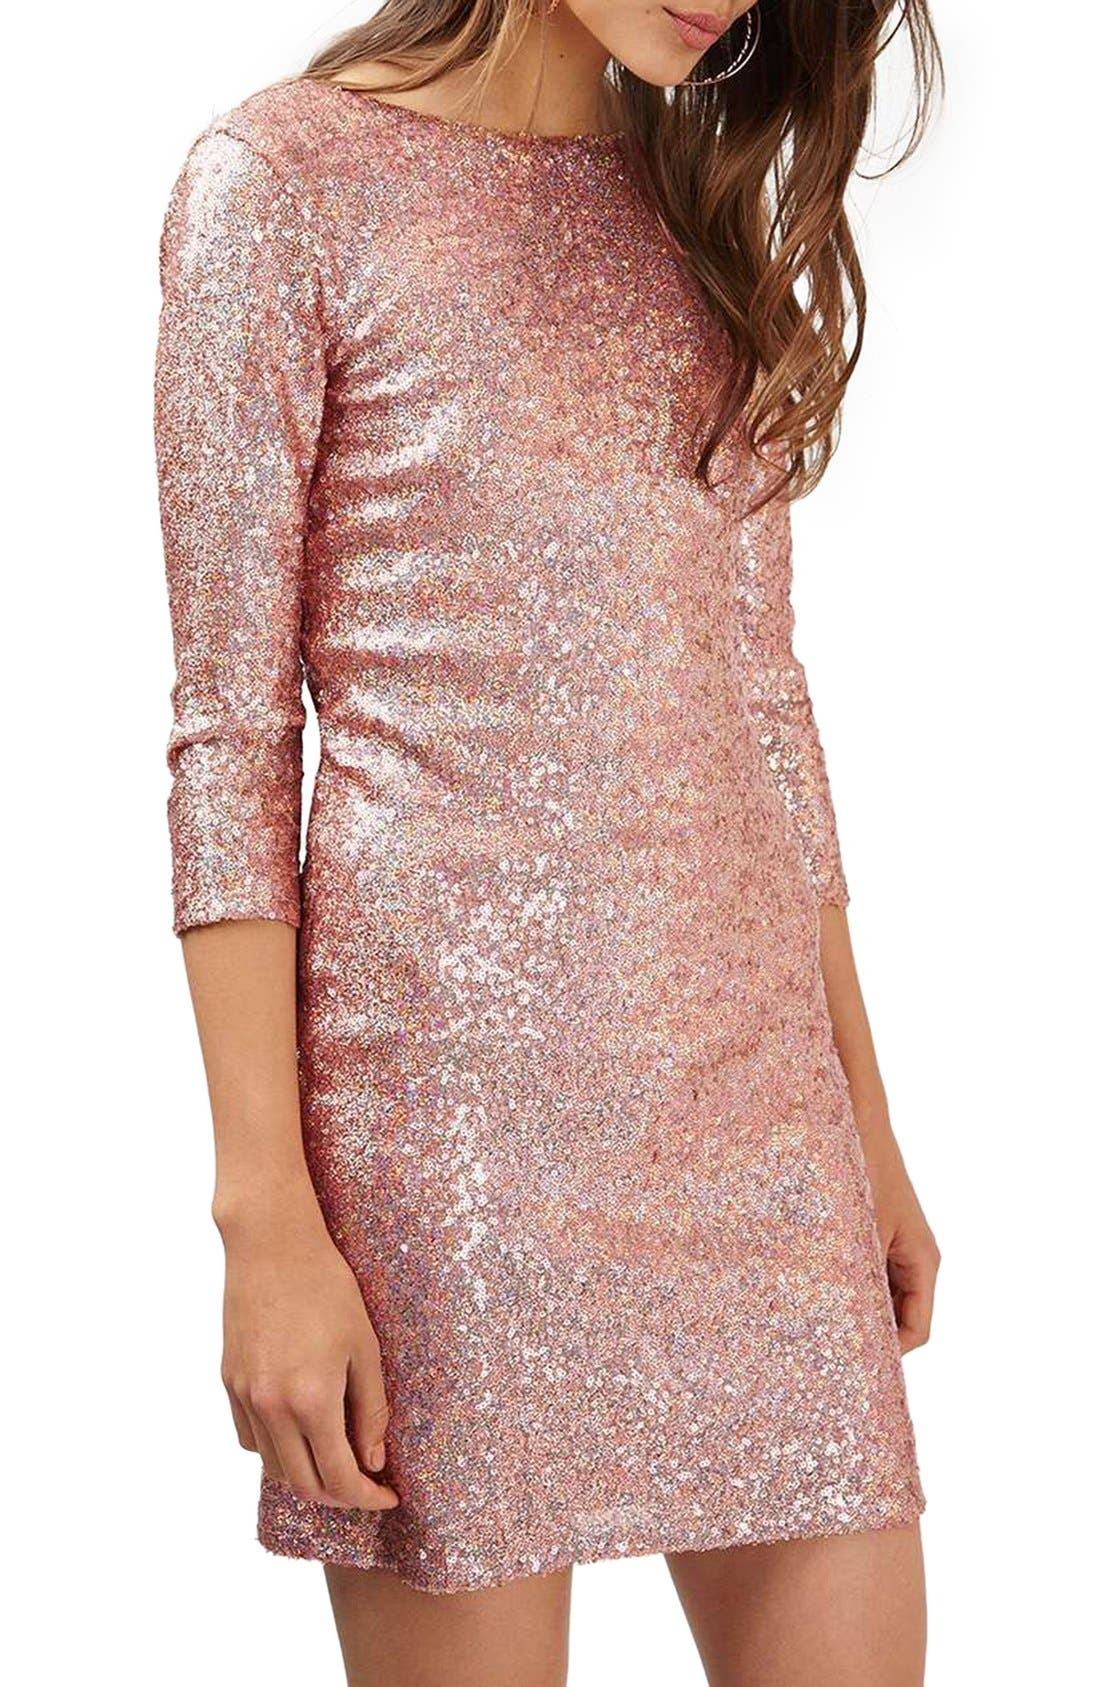 Alternate Image 1 Selected - Topshop Sequin Body-Con Minidress